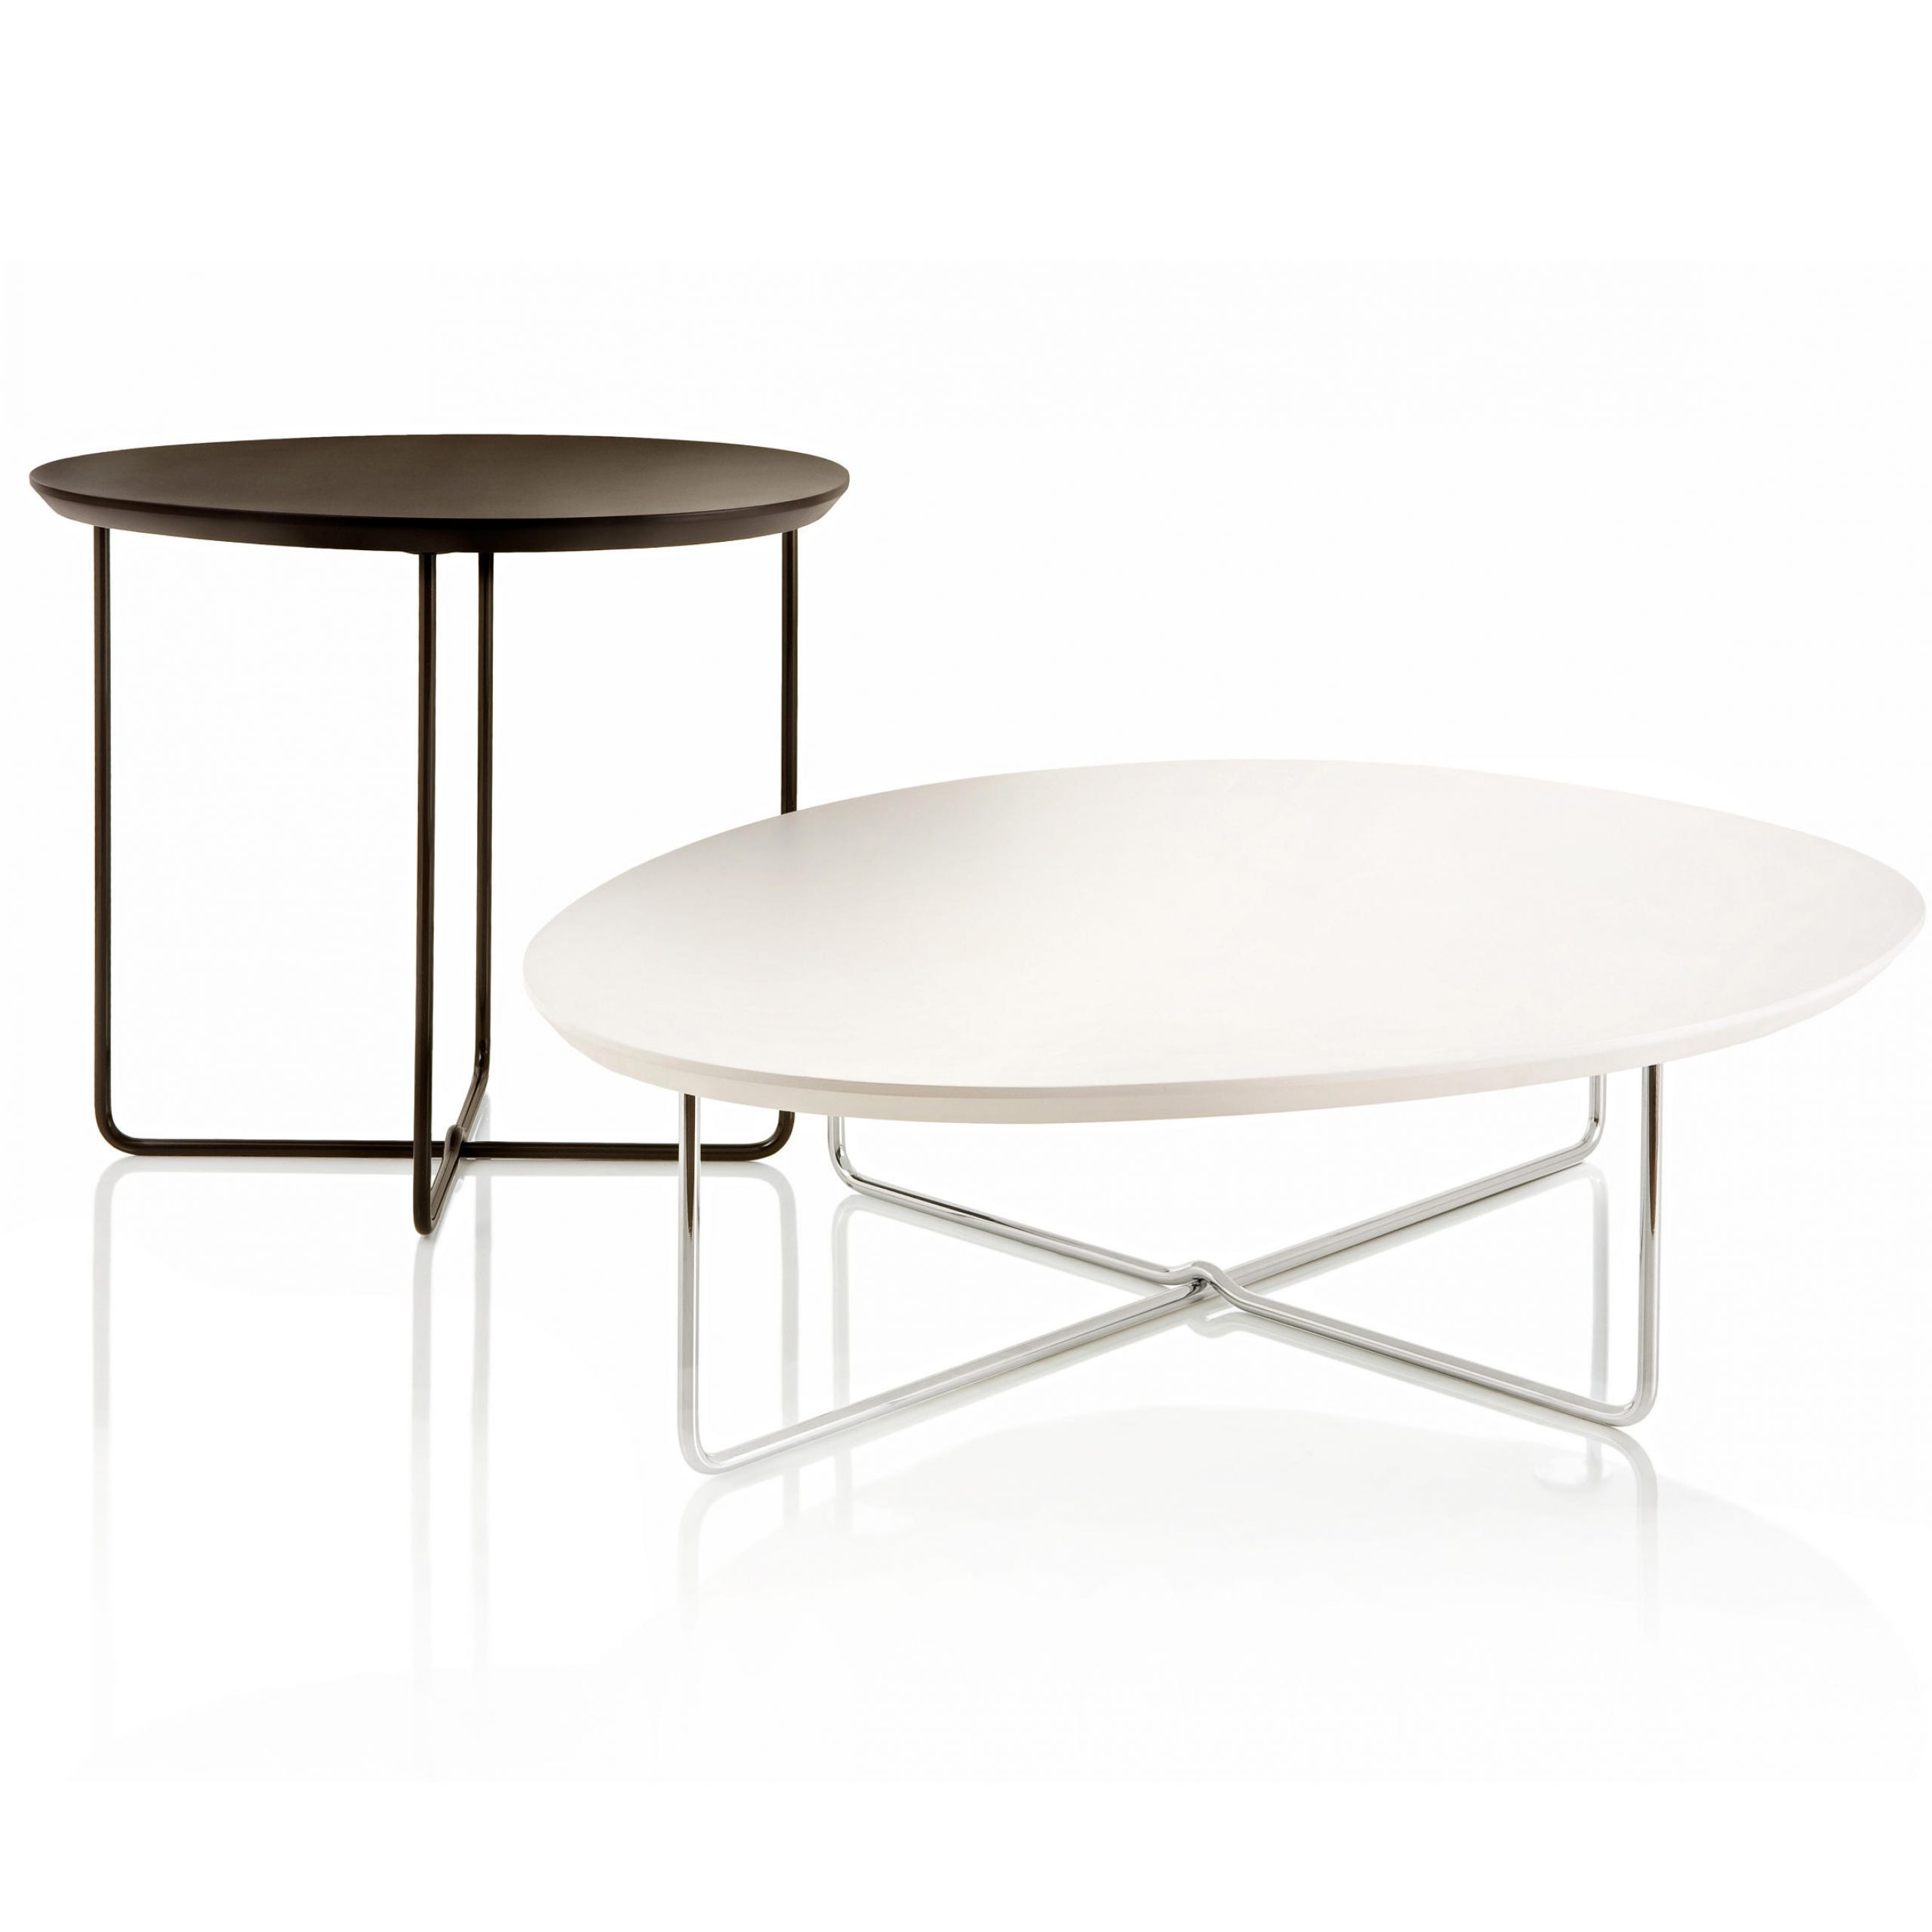 Clyde Coffee Table & Designer Furniture | Architonic With Regard To Current Clyde Round Bar Tables (View 15 of 25)